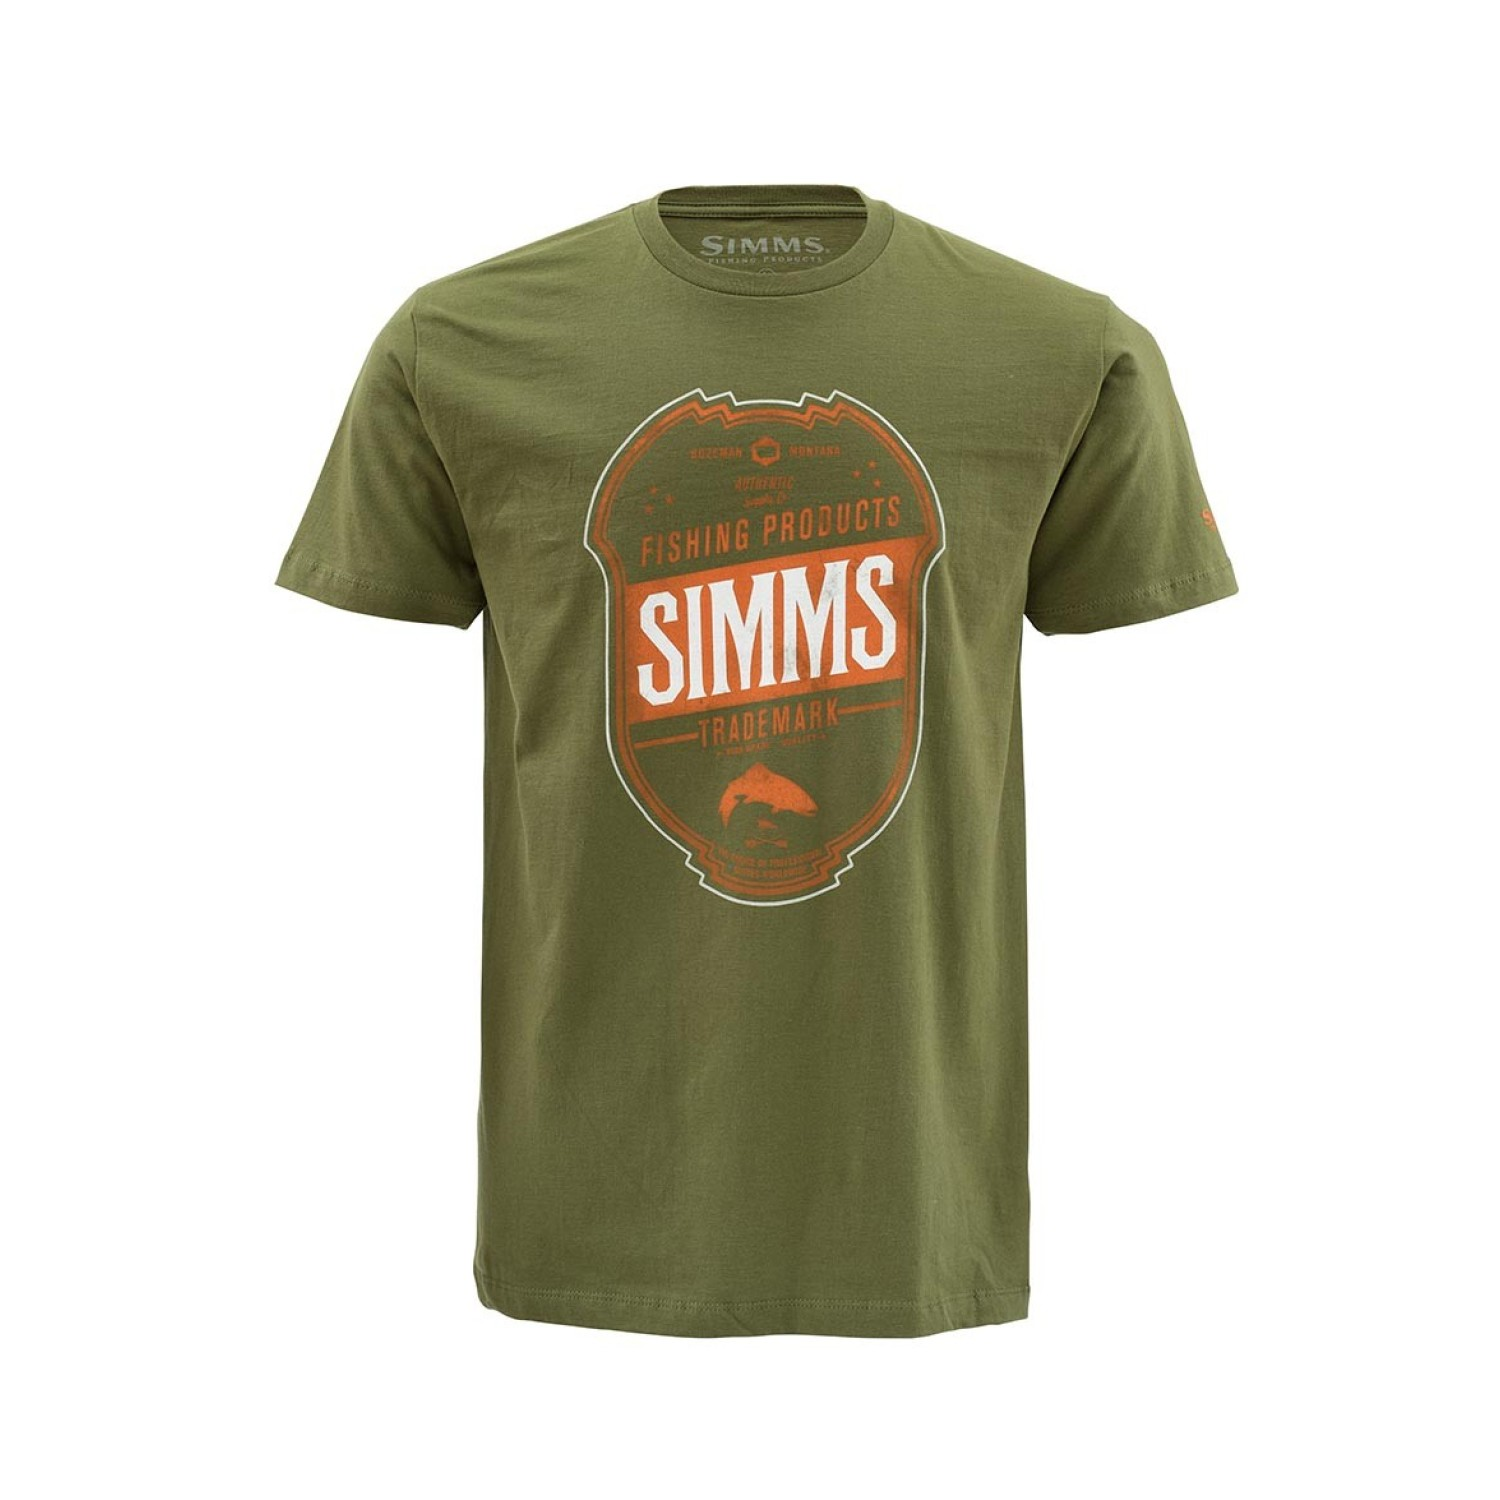 Simms T-Shirt Trademark Olive